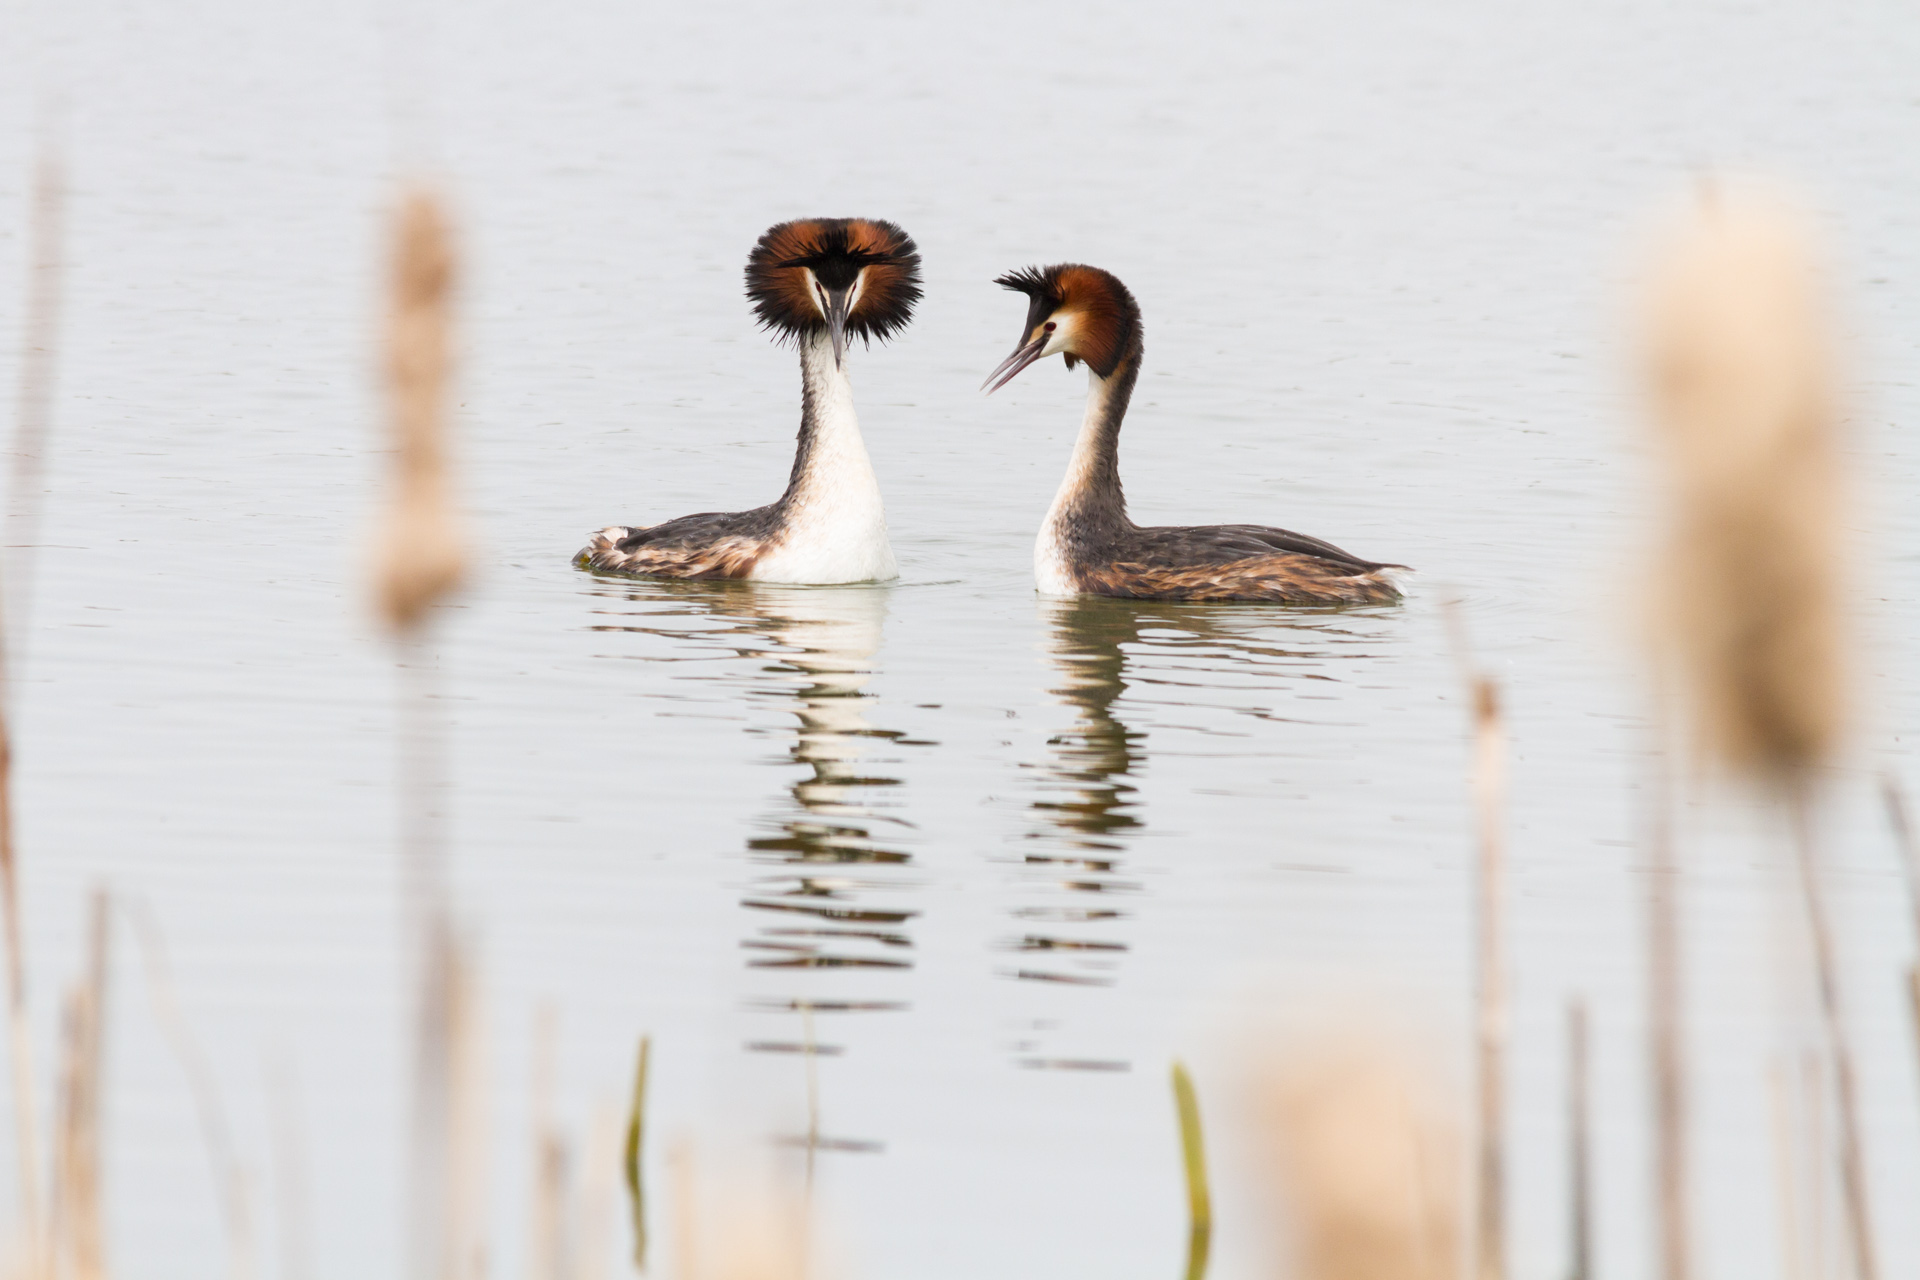 A courting pair of Great Crest Grebes perform a dance